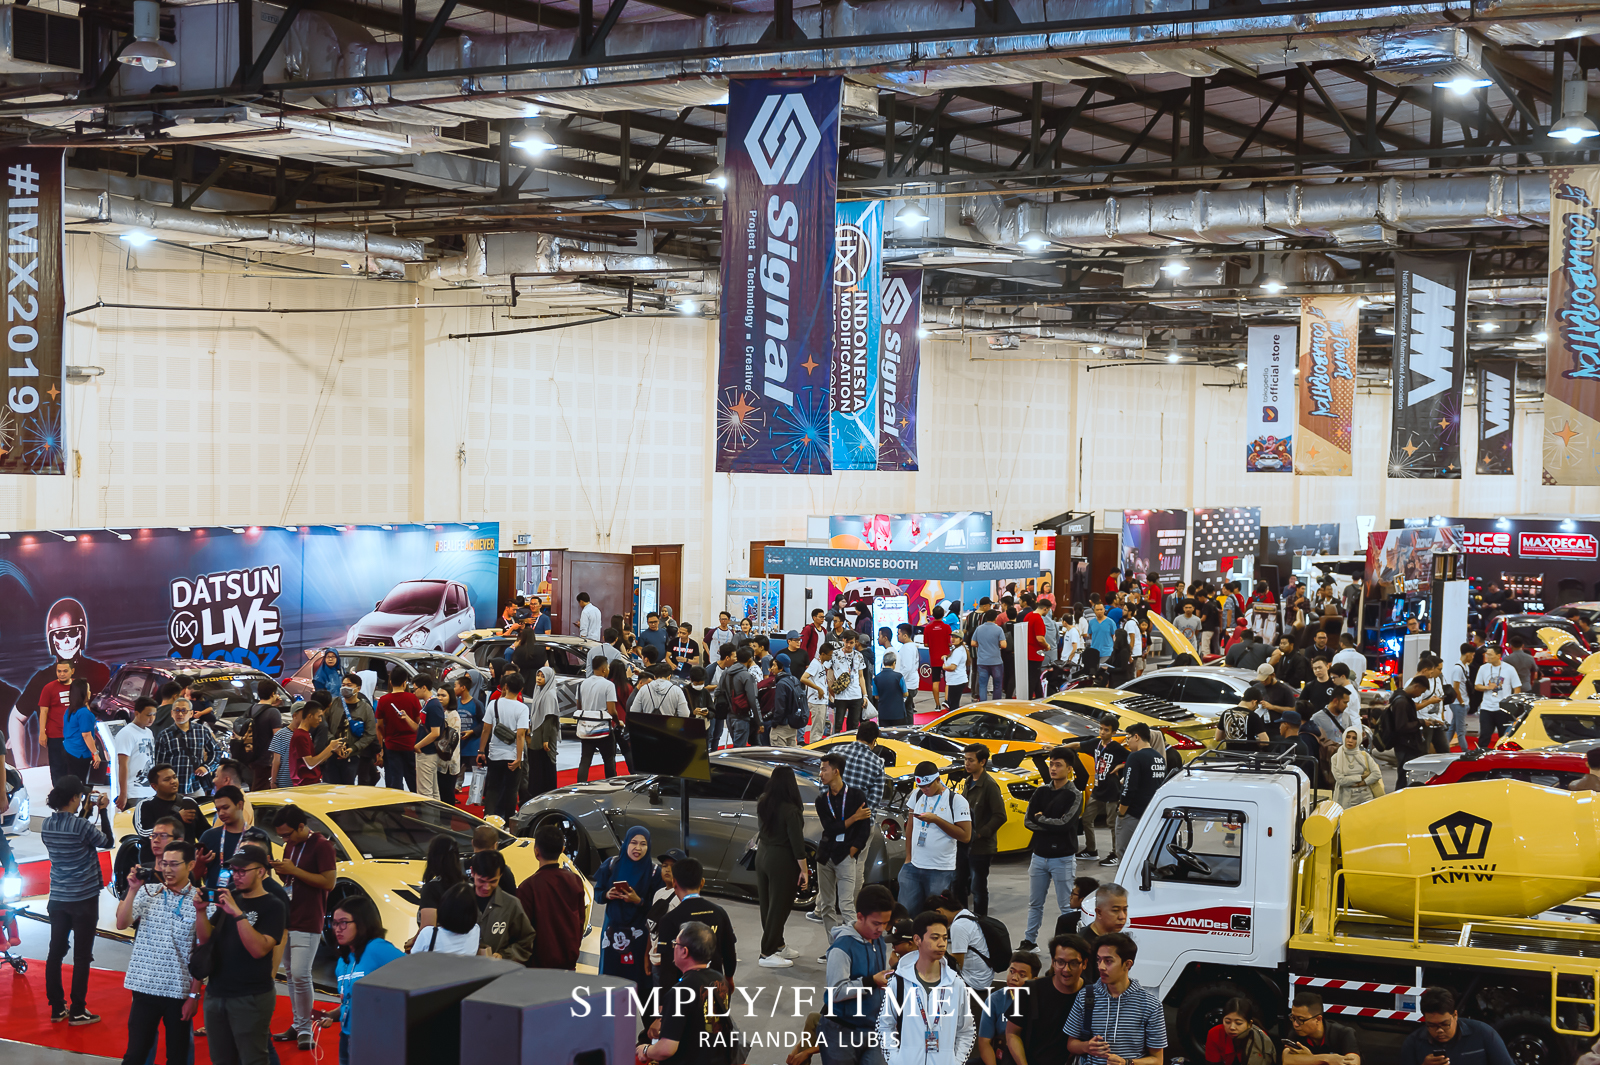 INDONESIA MODIFICATION EXPO 2019 AT BALAI KARTINI, JAKARTA